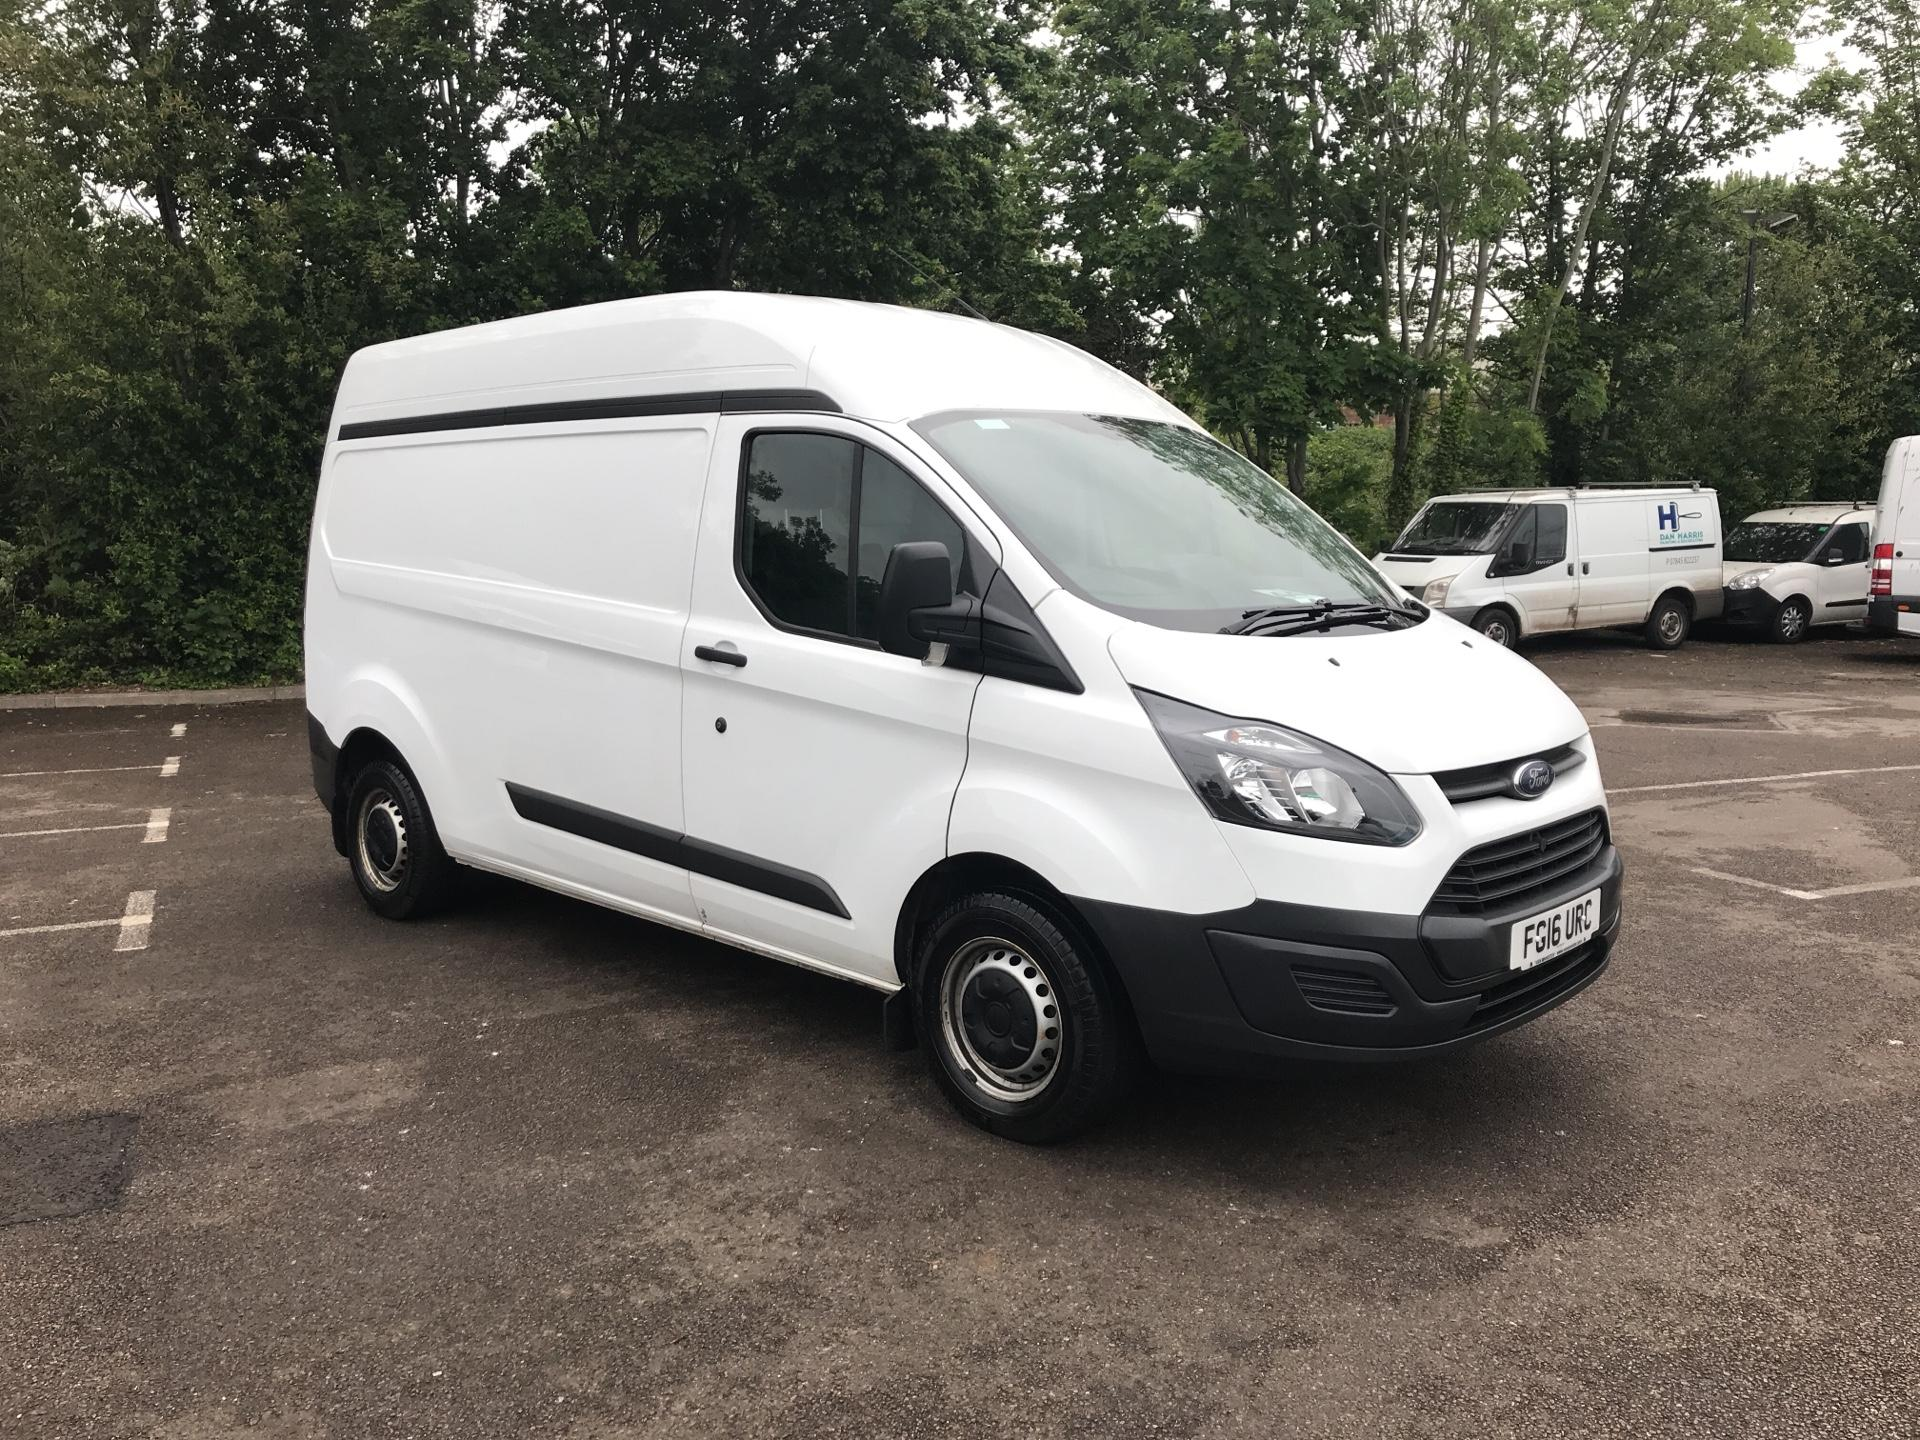 2016 Ford Transit Custom 2.2 Tdci 100Ps High Roof Van Euro 5 (FG16URC)